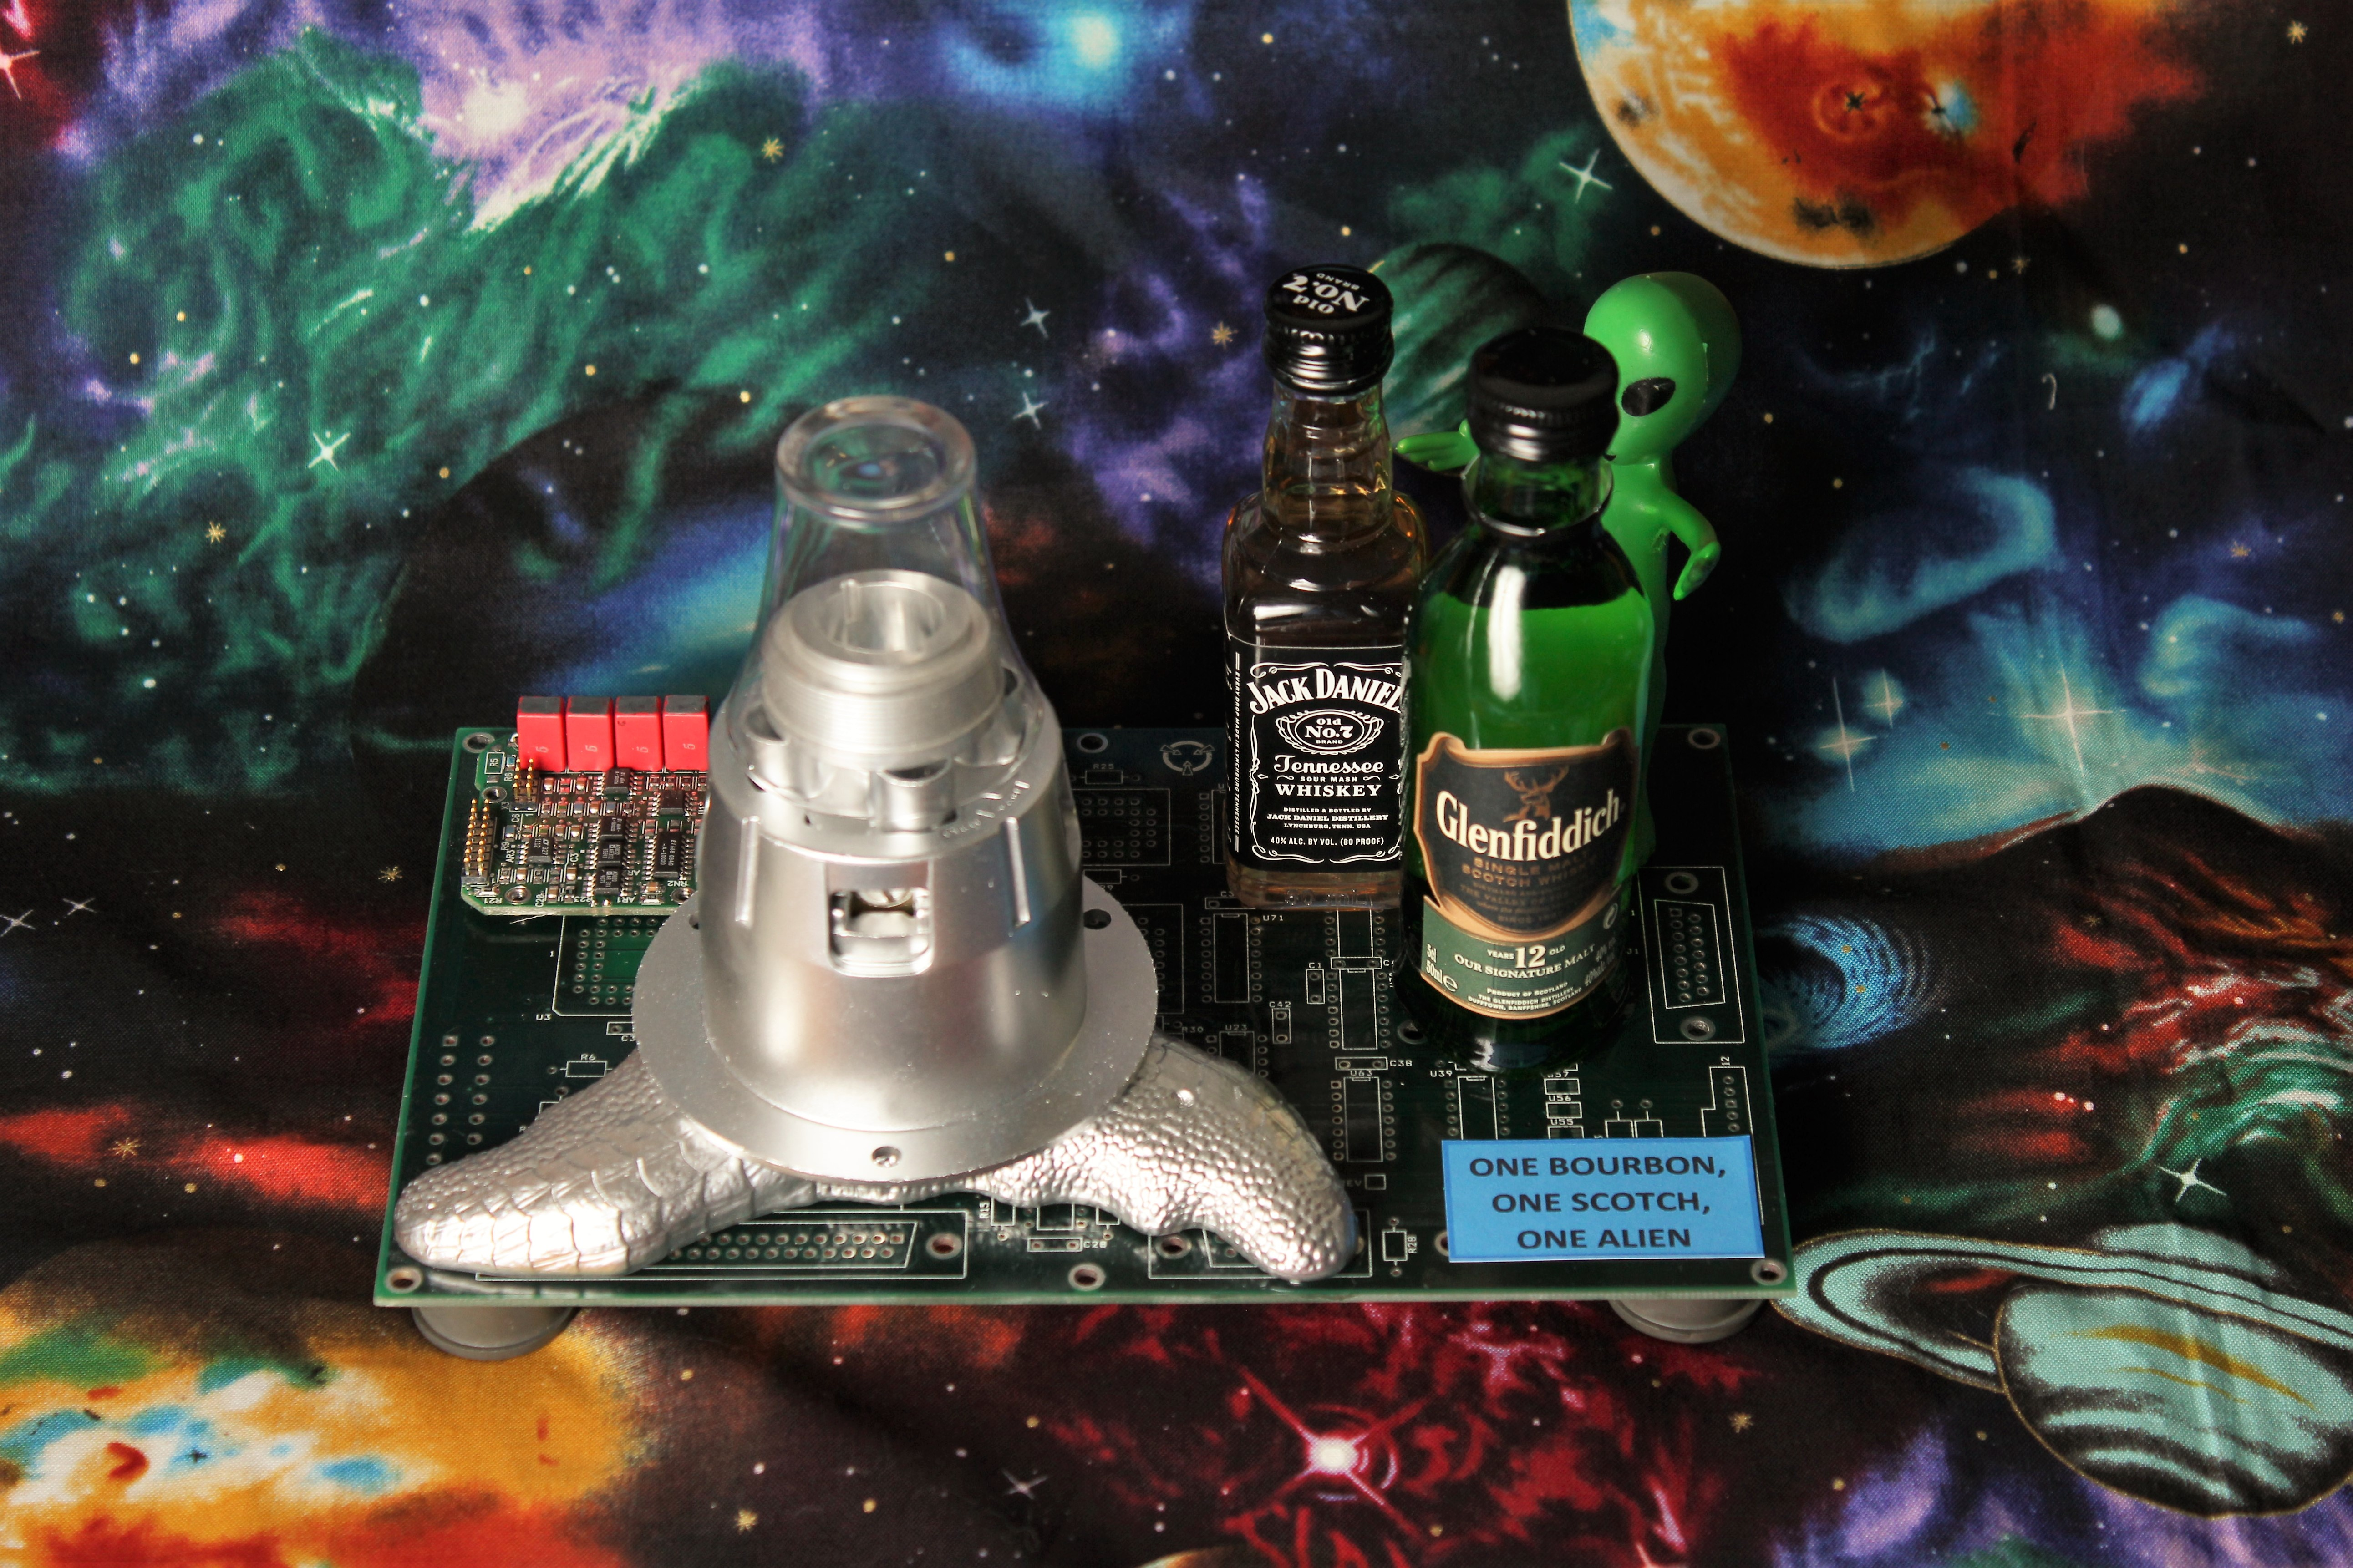 166 One Bourbon, One, Scotch, One Alien 2